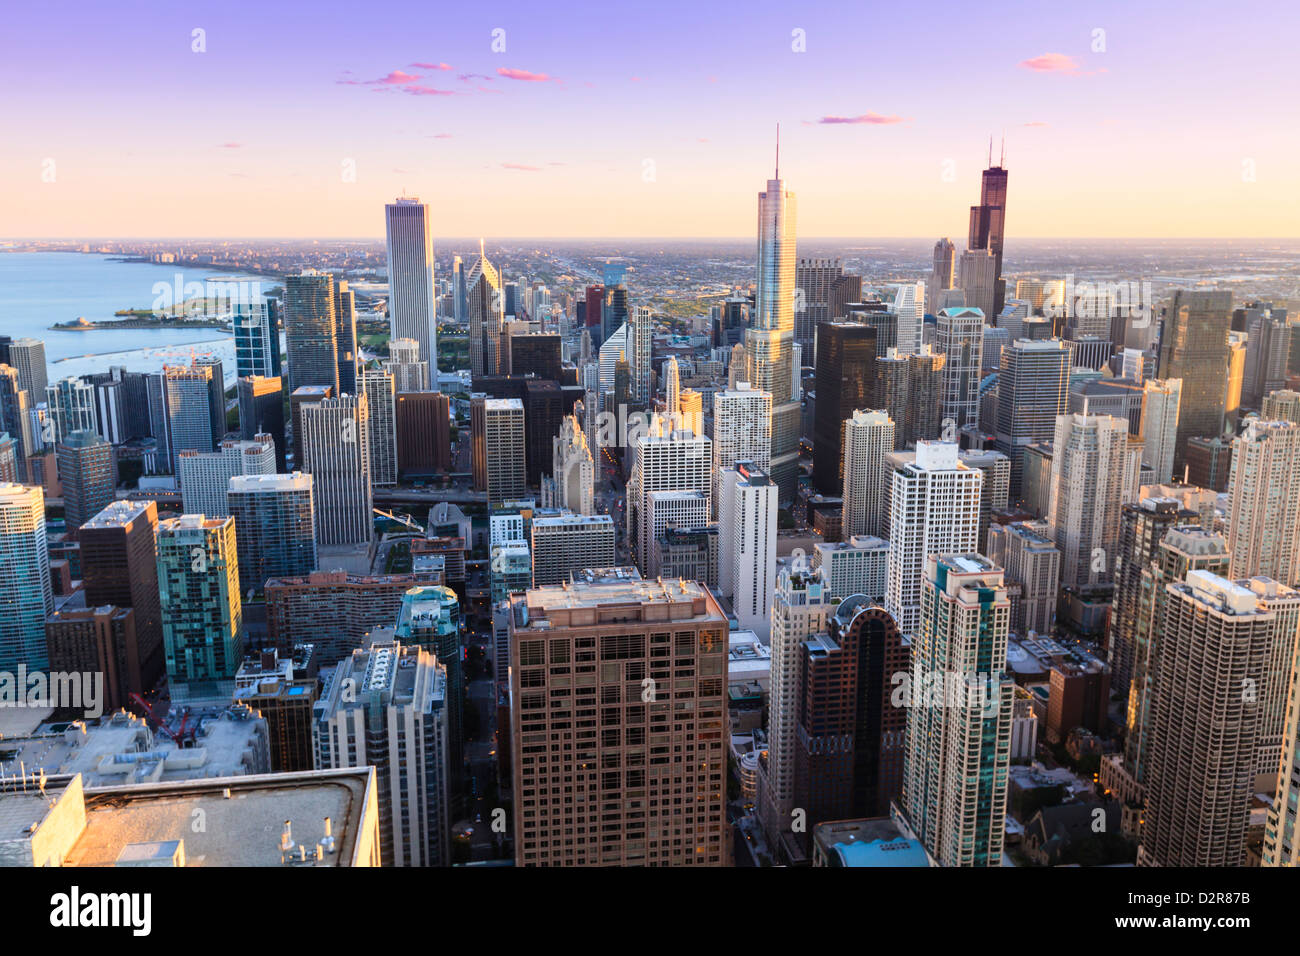 High angle view of Chicago skyline and suburbs looking south in the late afternoon, Chicago, Illinois, USA. - Stock Image